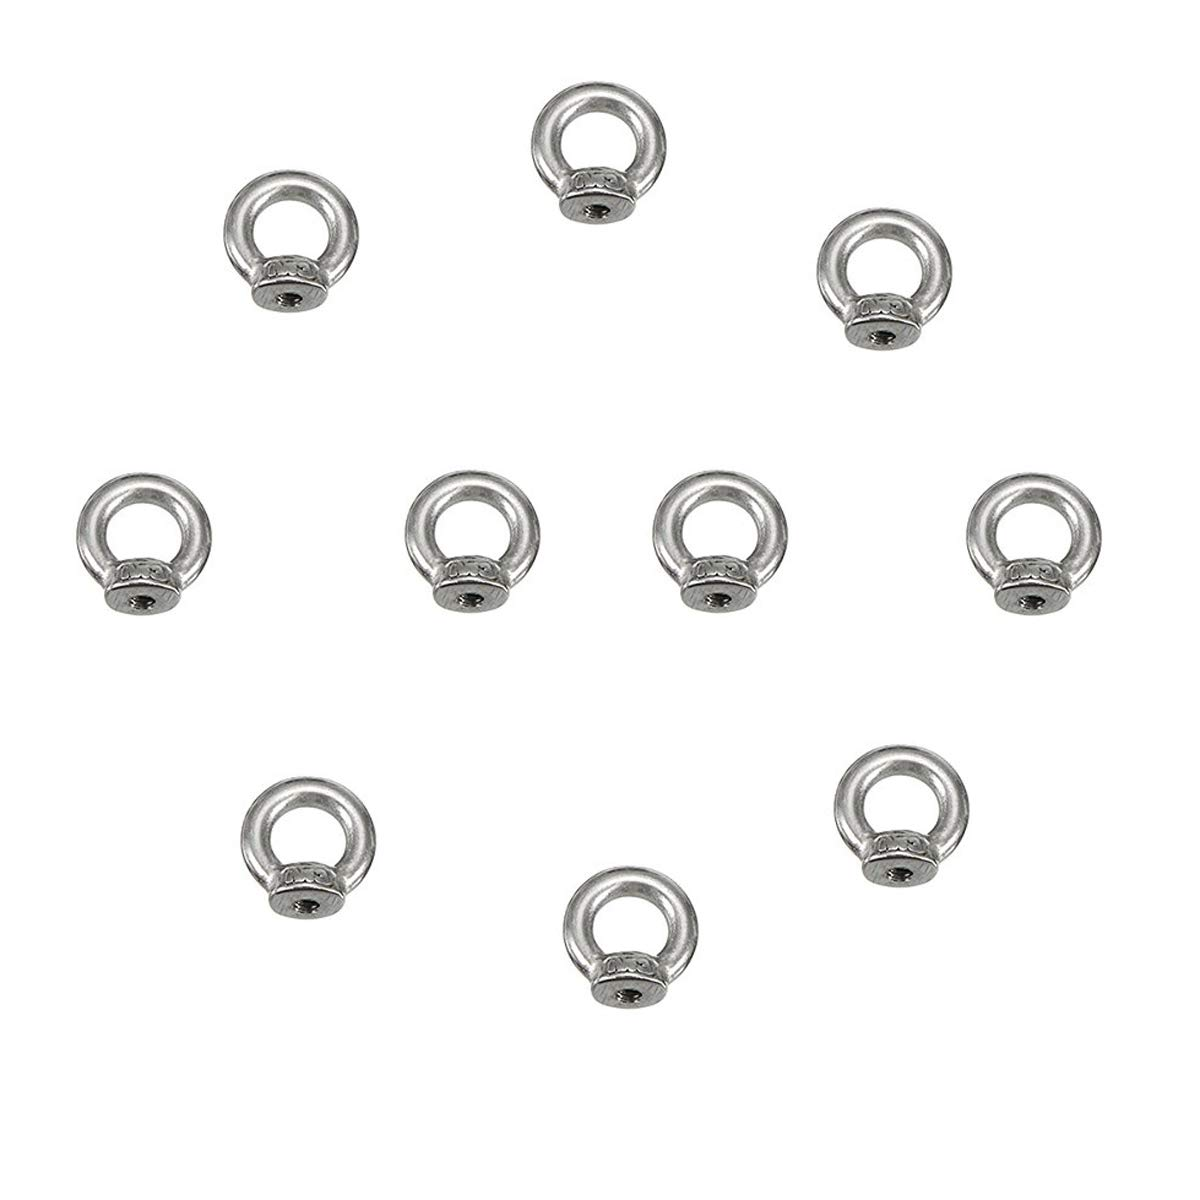 10 PCS 304 Stainless Steel M3 Thread Dia Ring Shape Eyed Bolt Lifting Eye Nut Fastener